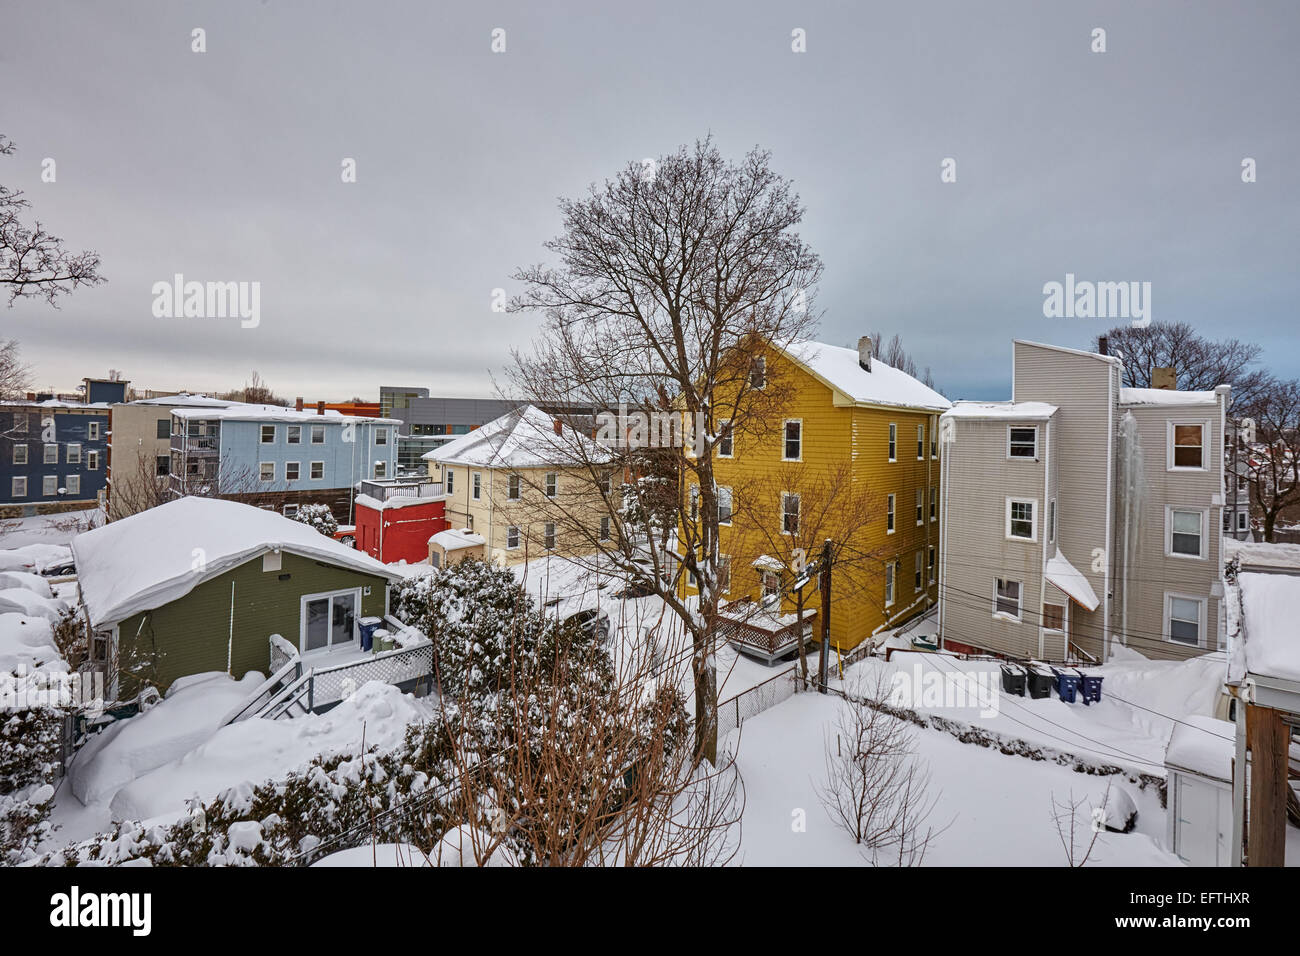 Boston, MA, US. 10th February, 2015. Aftermath of Snow storm Marcus - Stock Image